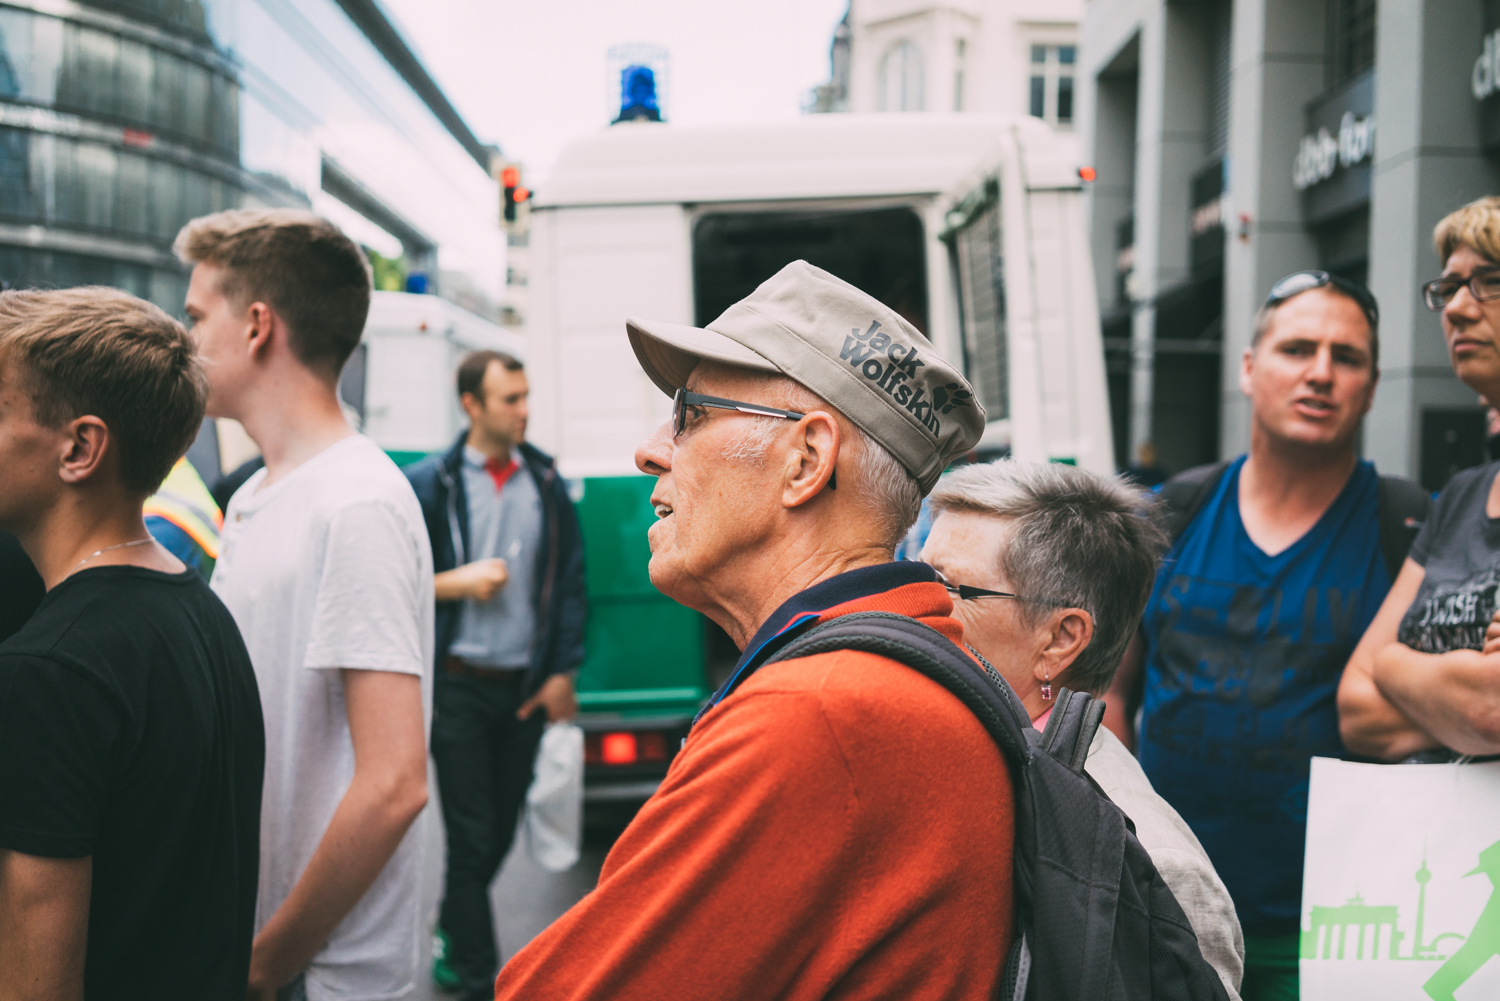 Older gent looks on as the rally forms